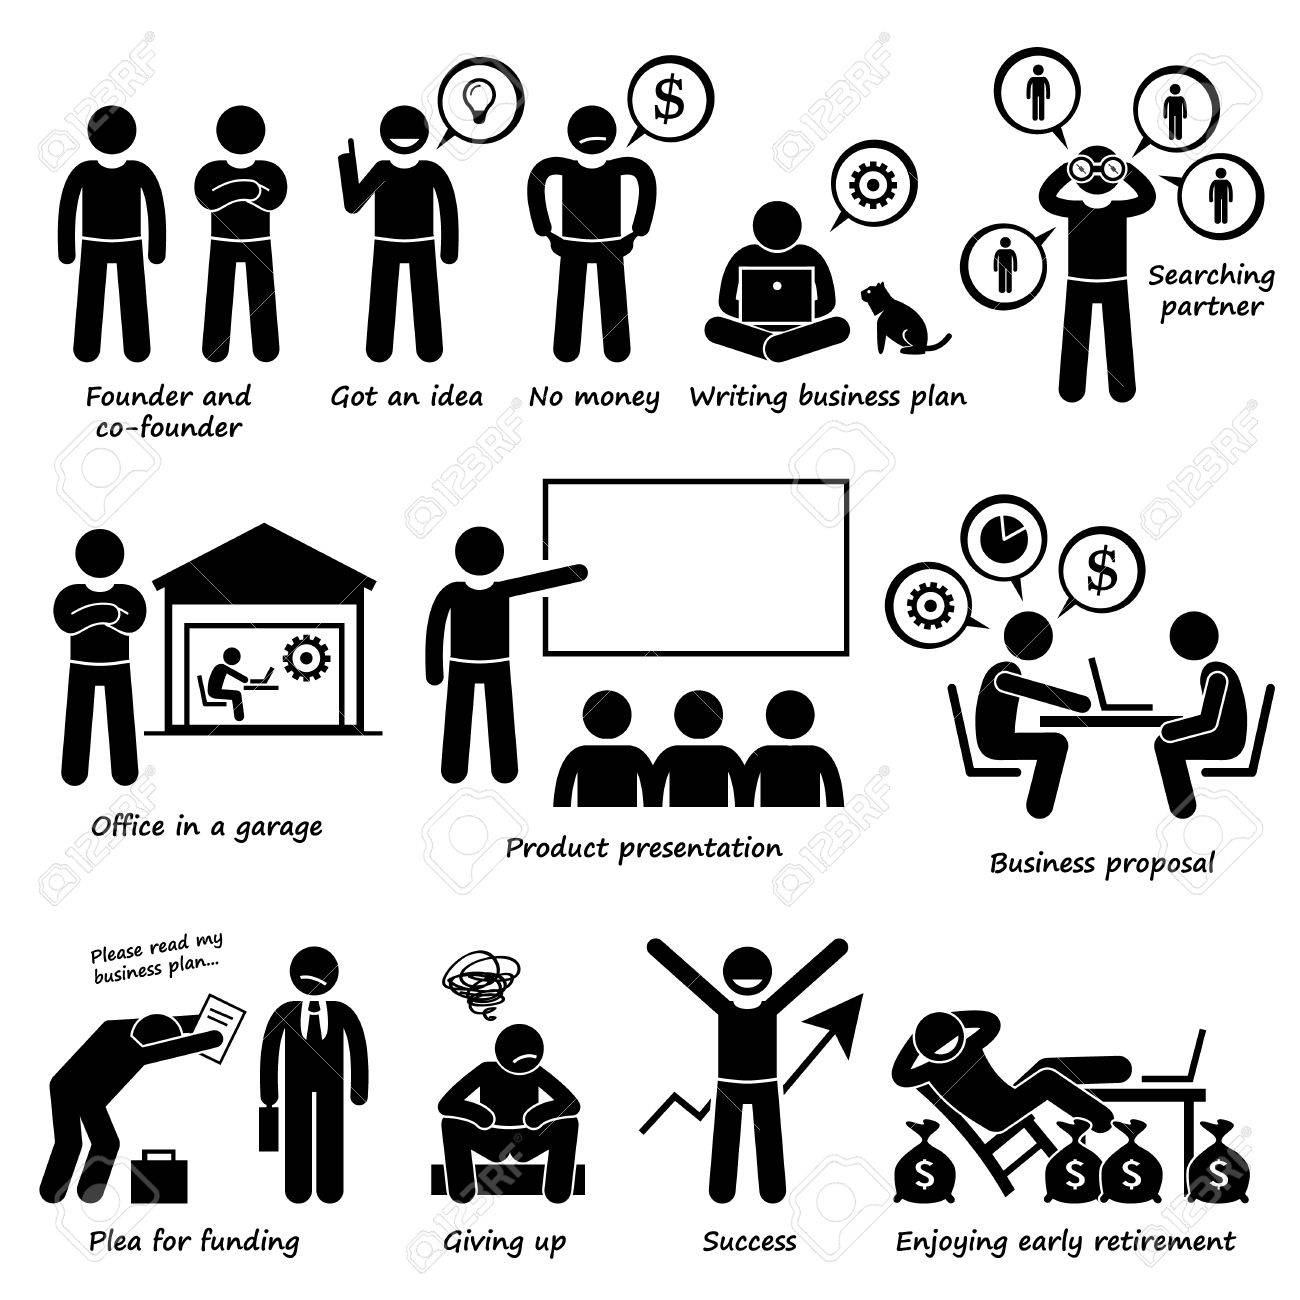 Entrepreneur Creating a Startup Business Company Pictogram - 64985070